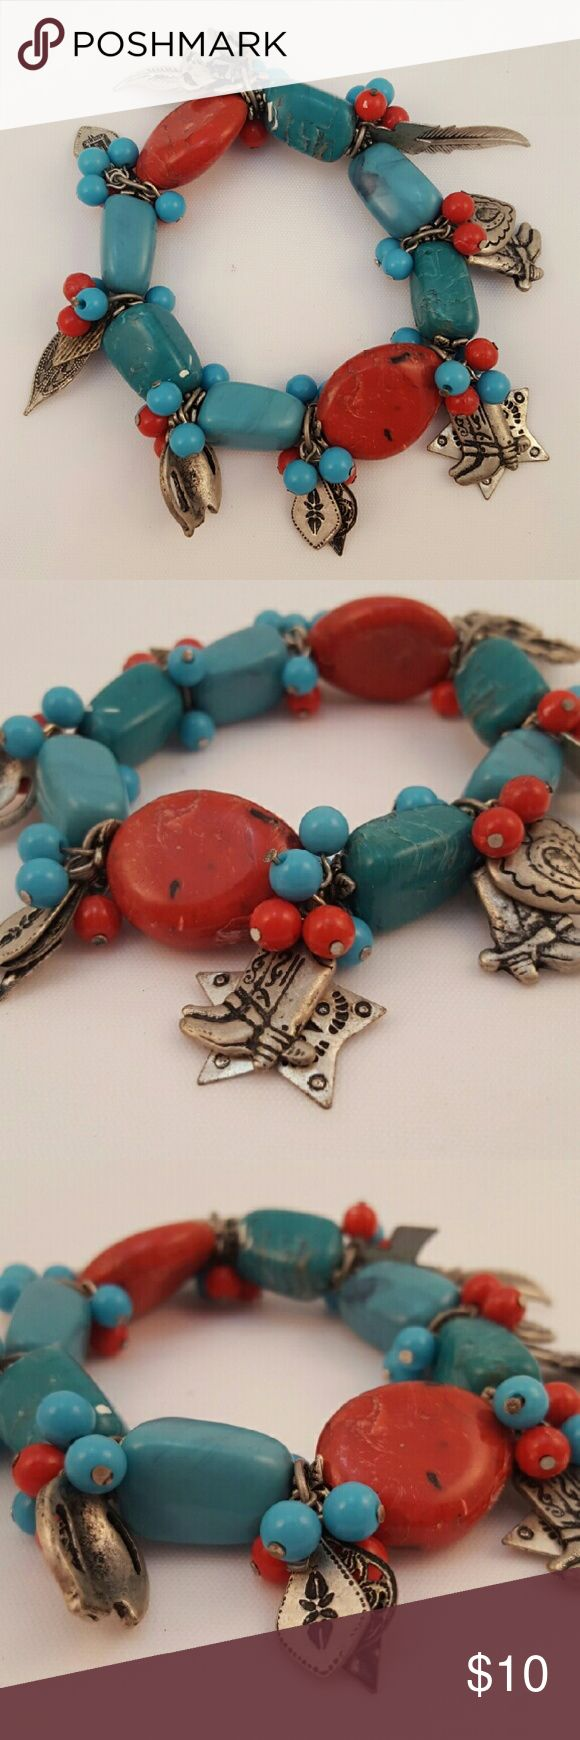 Indian style bracelet. Costume jewelry Indian design costume jewelry bracelet. Turquoise type beads in red and turquoise with lots of dangling charms that include boots, feather, cross, heart, horseshoe, and more. unknown Jewelry Bracelets